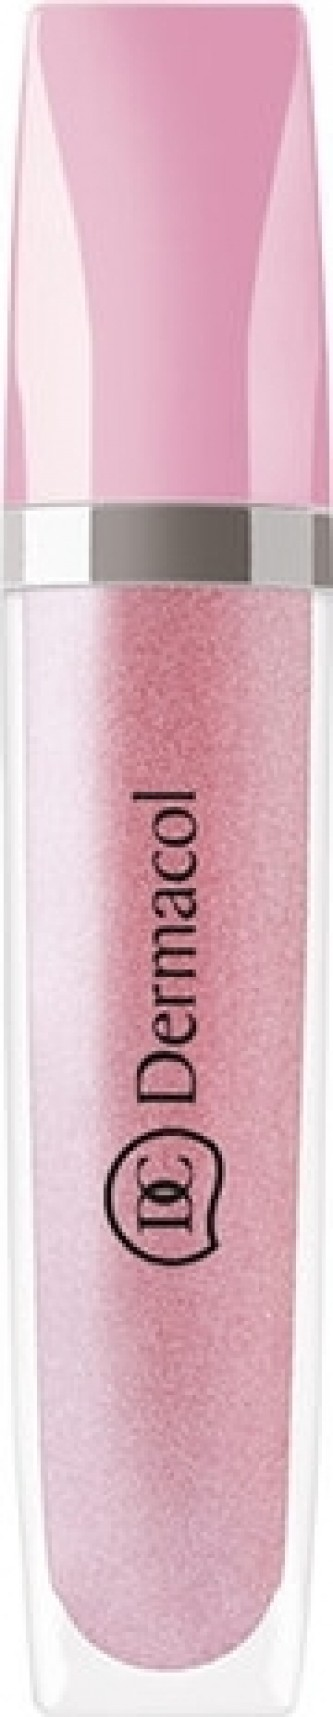 Dermacol Shimmering Lip Gloss 8 ml 7